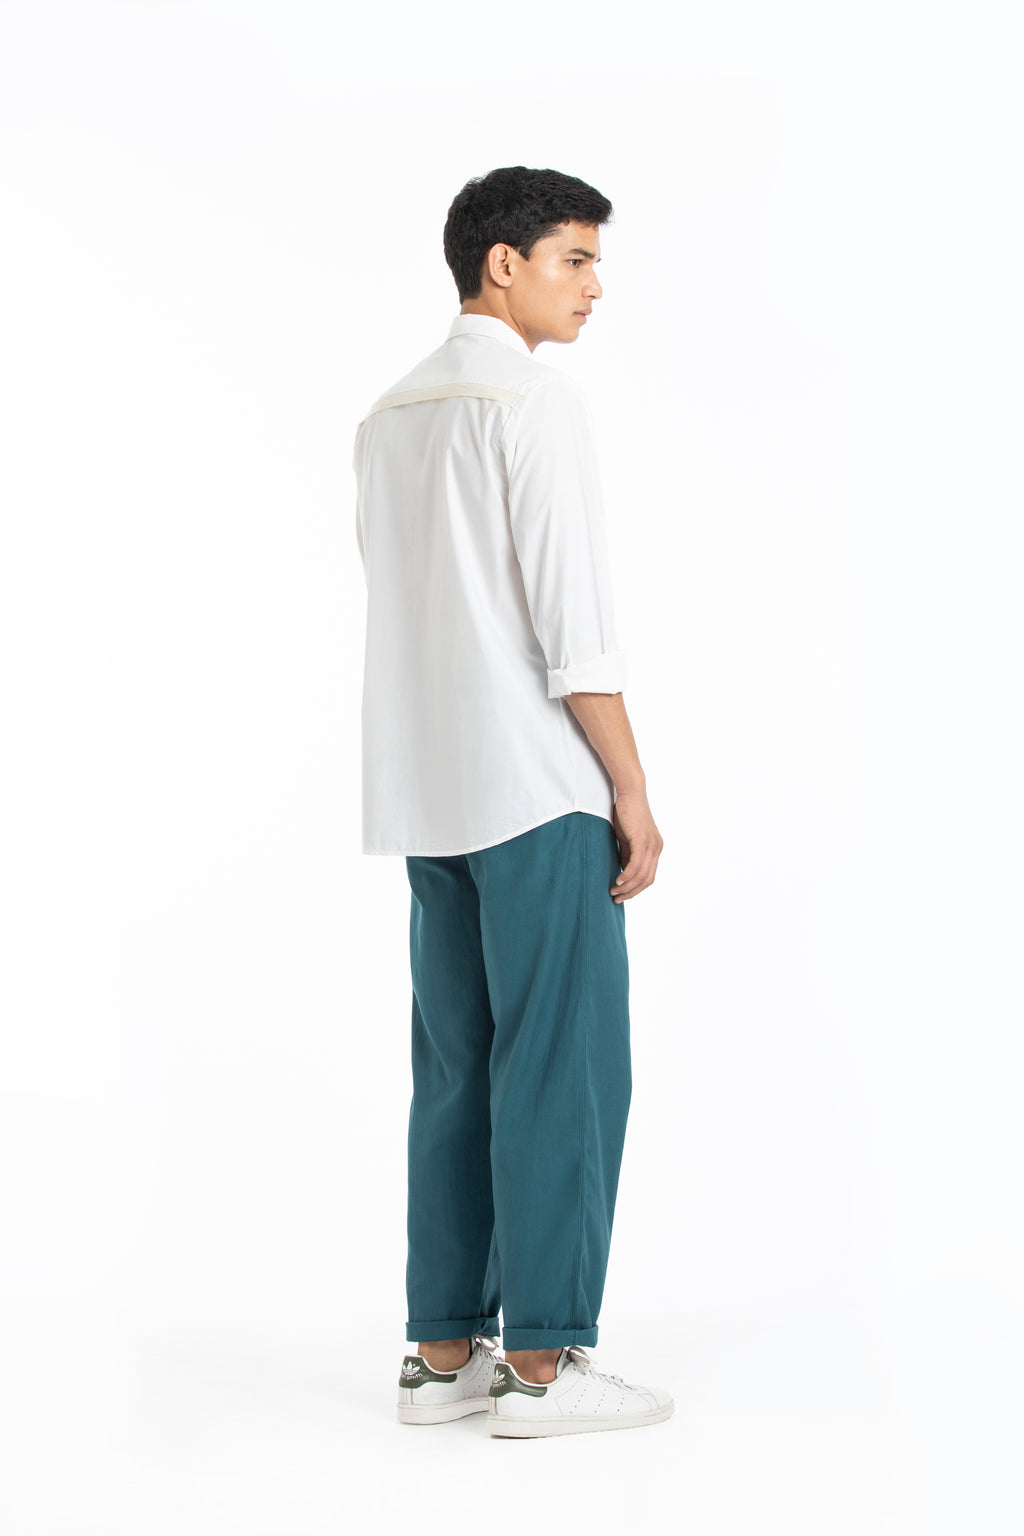 Flap Pocket Shirt- White